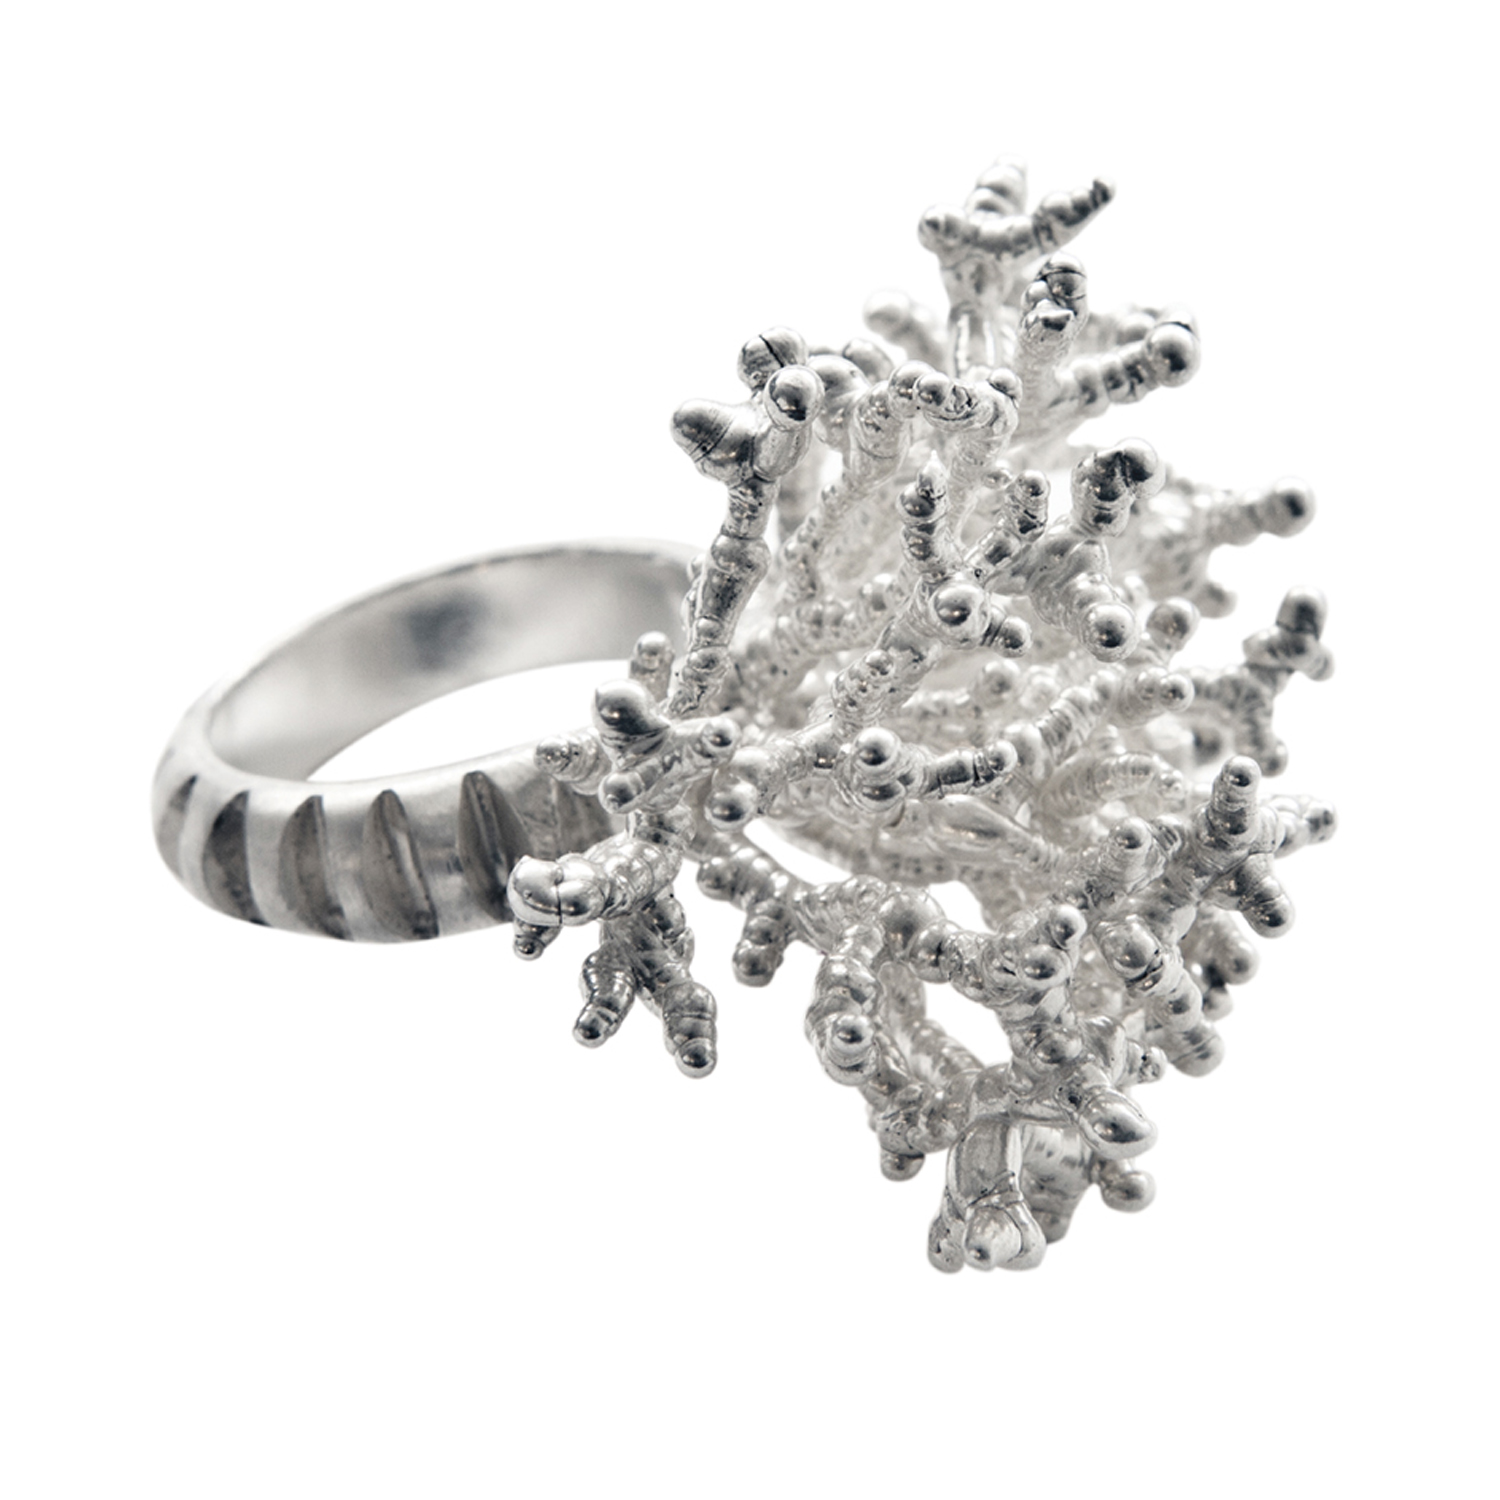 Silver Coral Coctail Ring